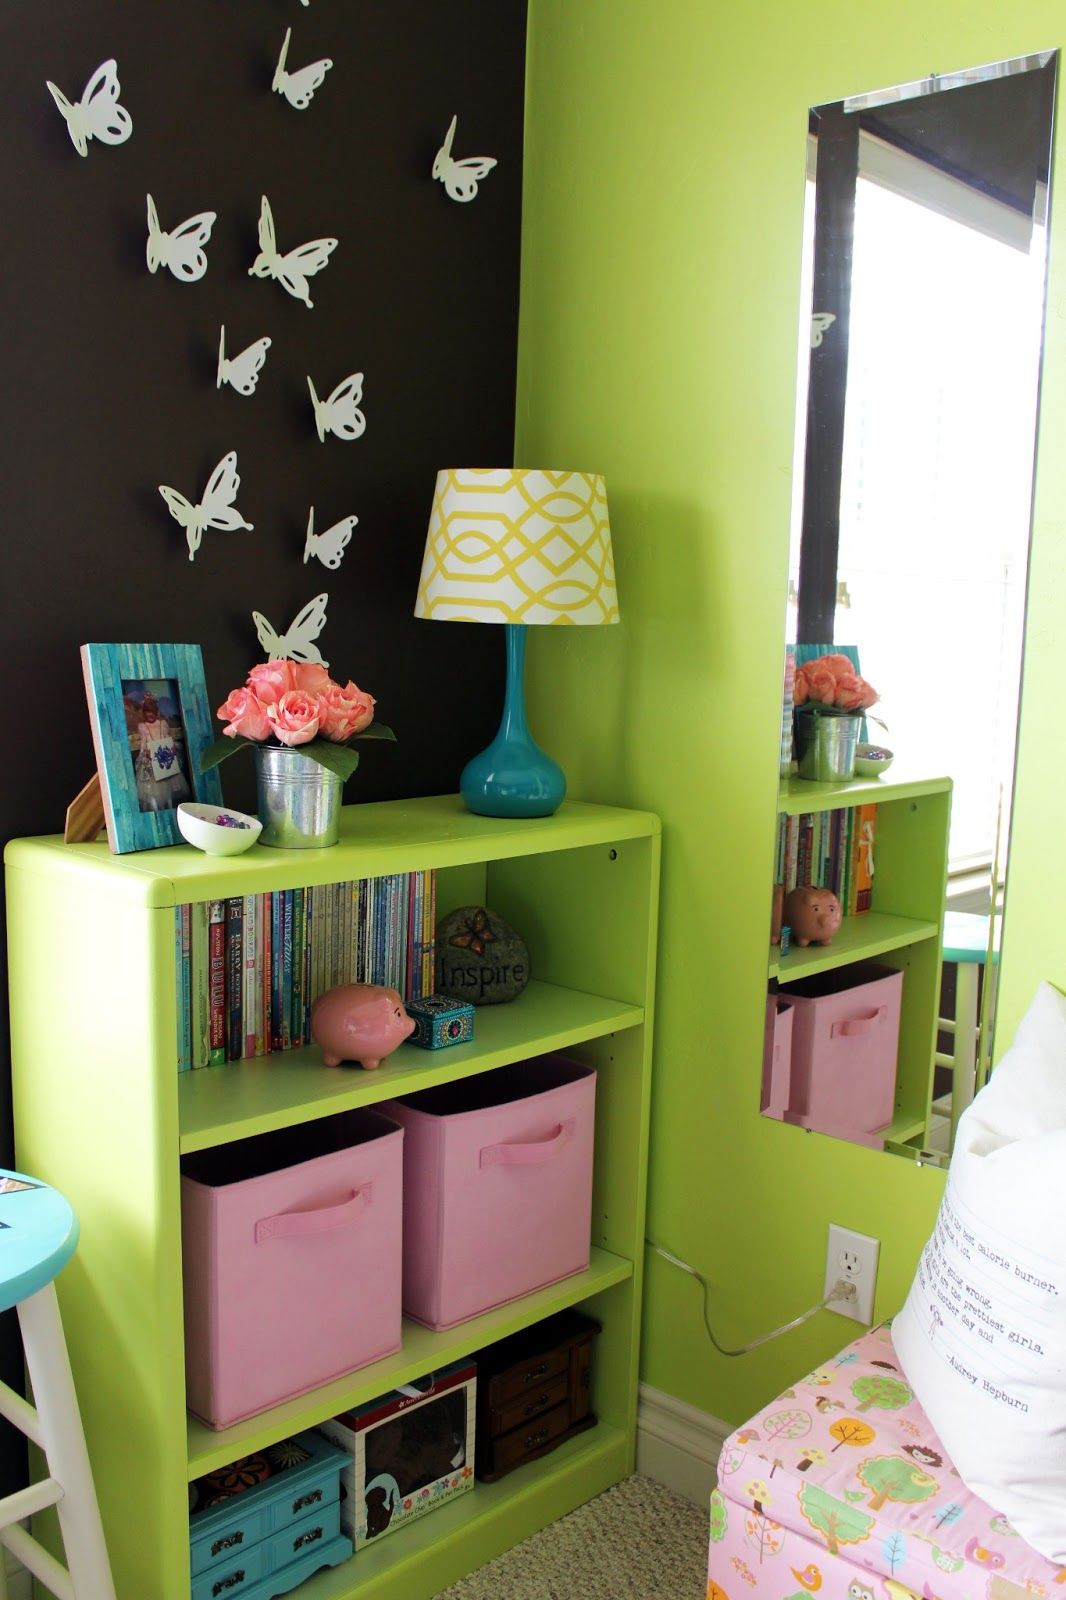 Paint the bookshelves the same color as the wall awesome